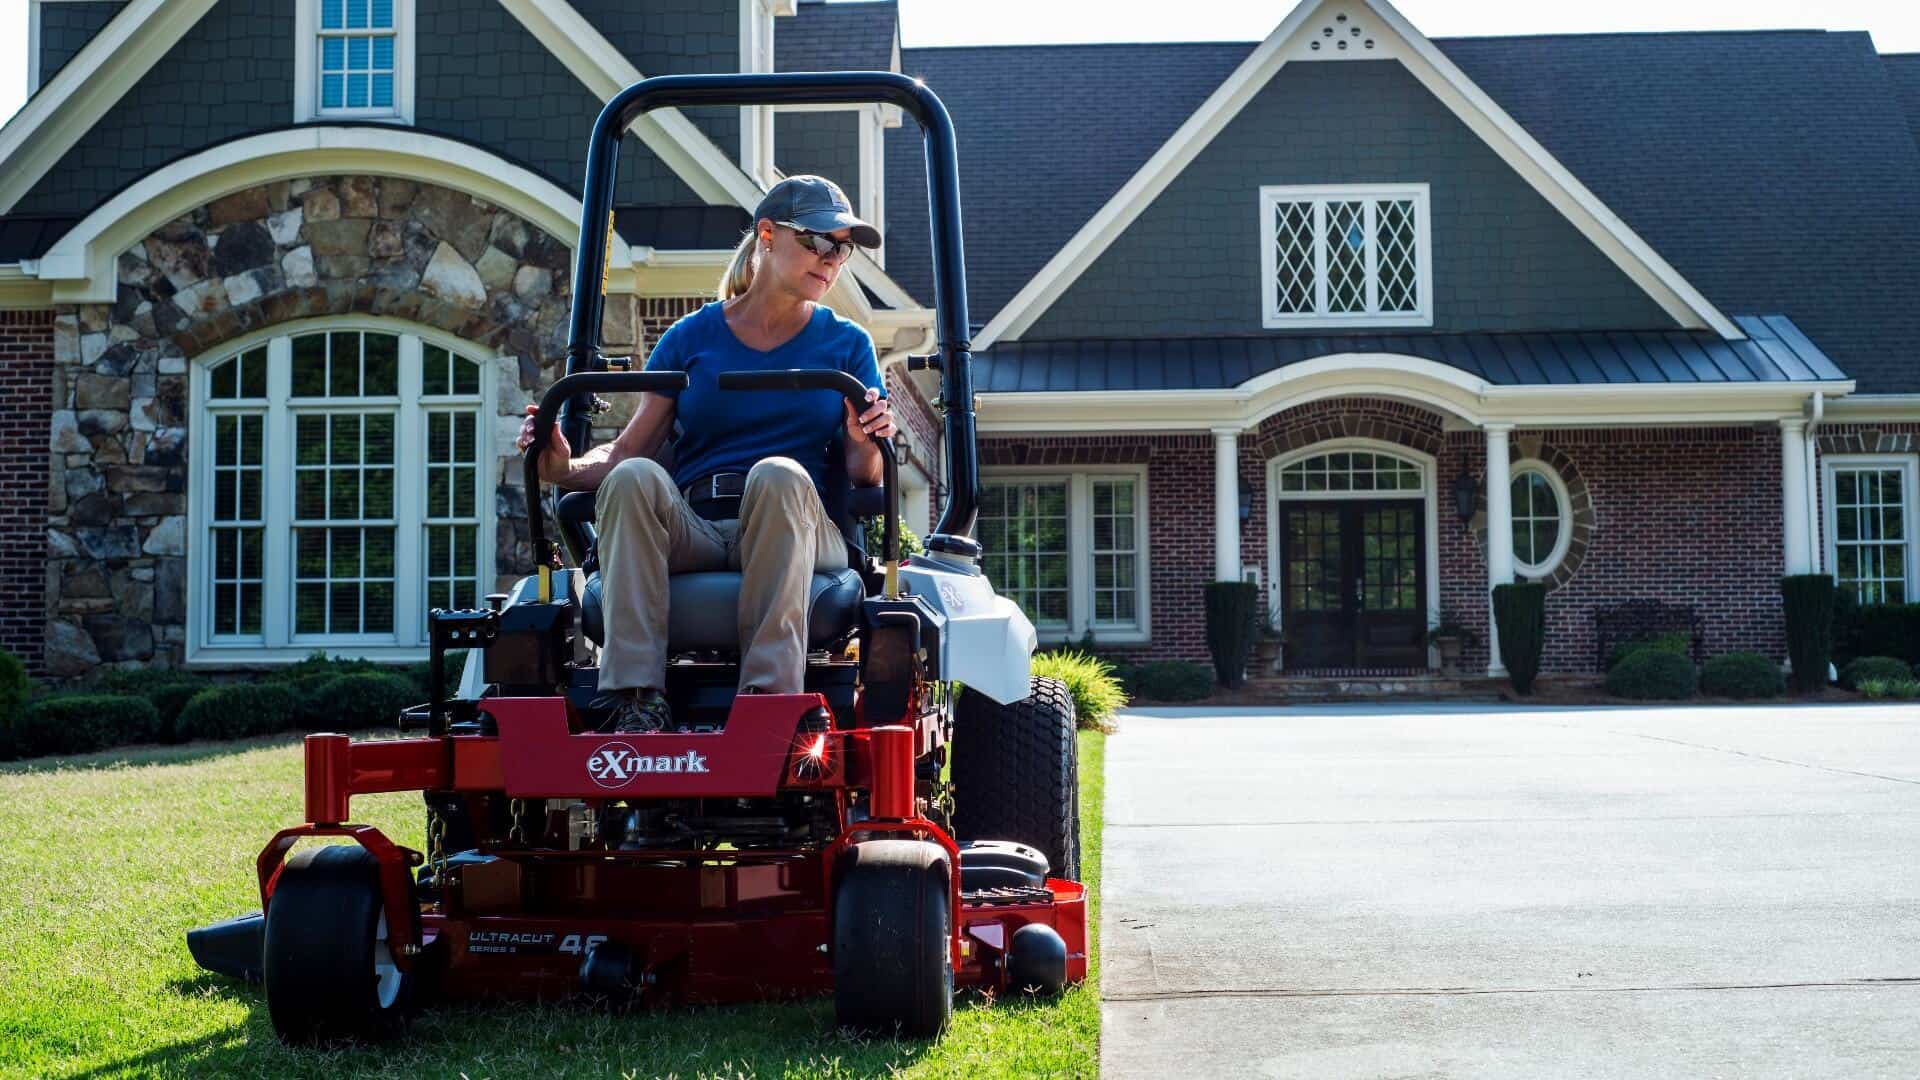 Mowing lawn during hot weather